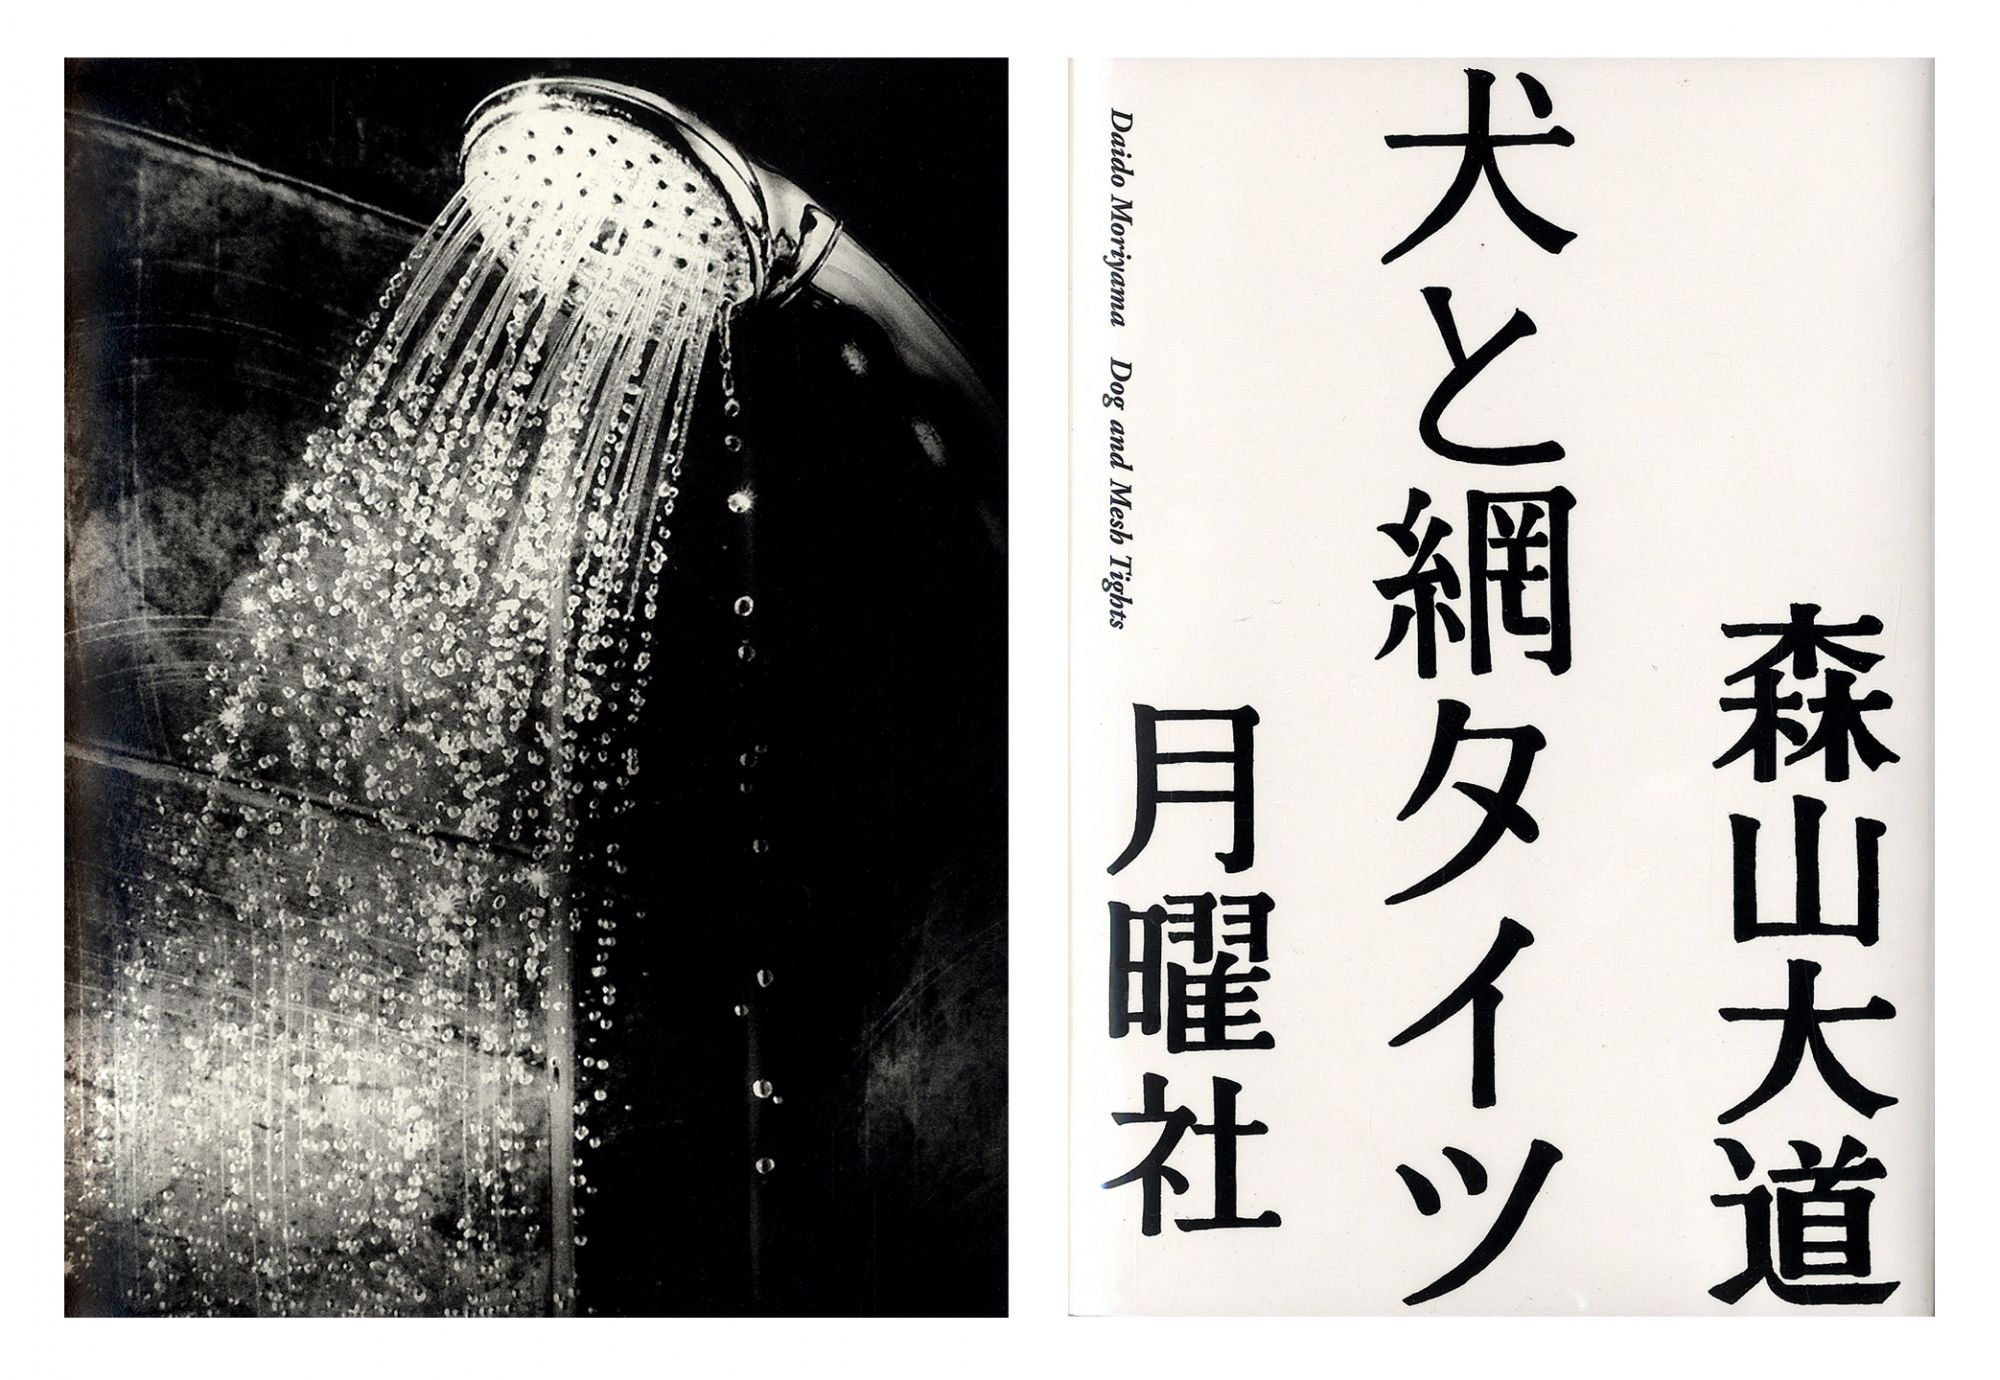 Daido Moriyama: Dog and Meshtights, Limited Edition (with Print Version A) [SIGNED]